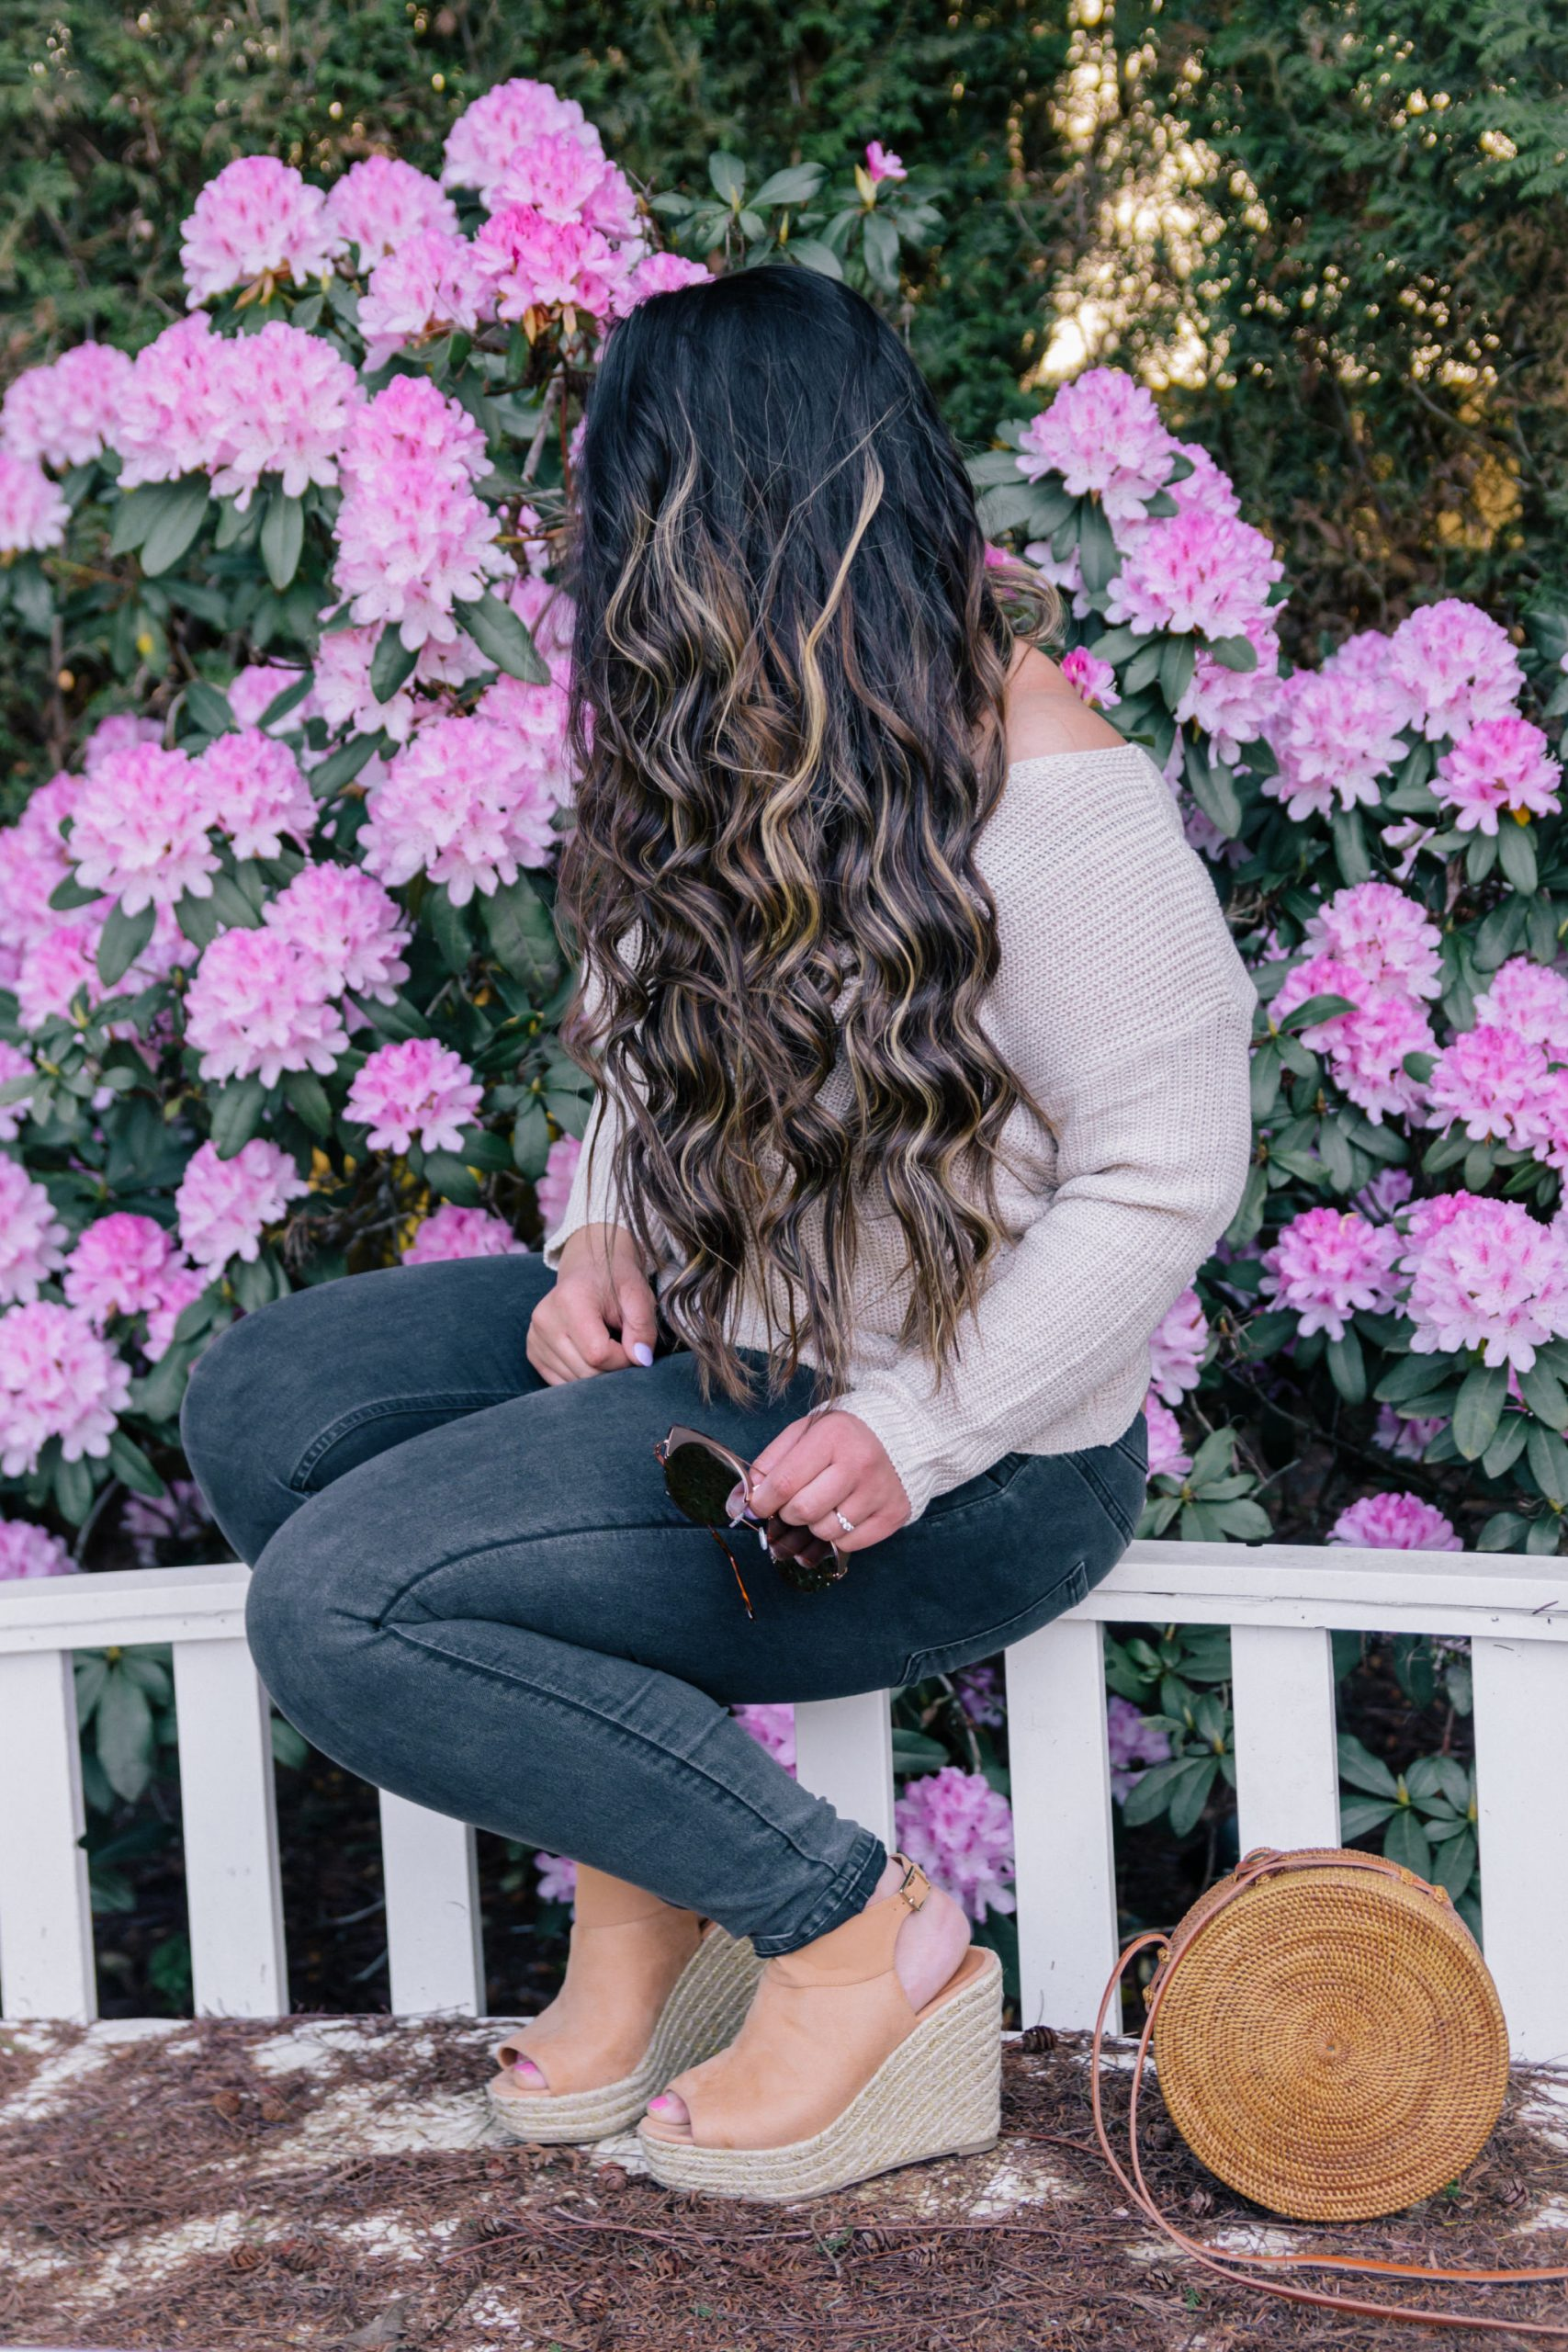 Products I use in my hair to get gorgeous curls